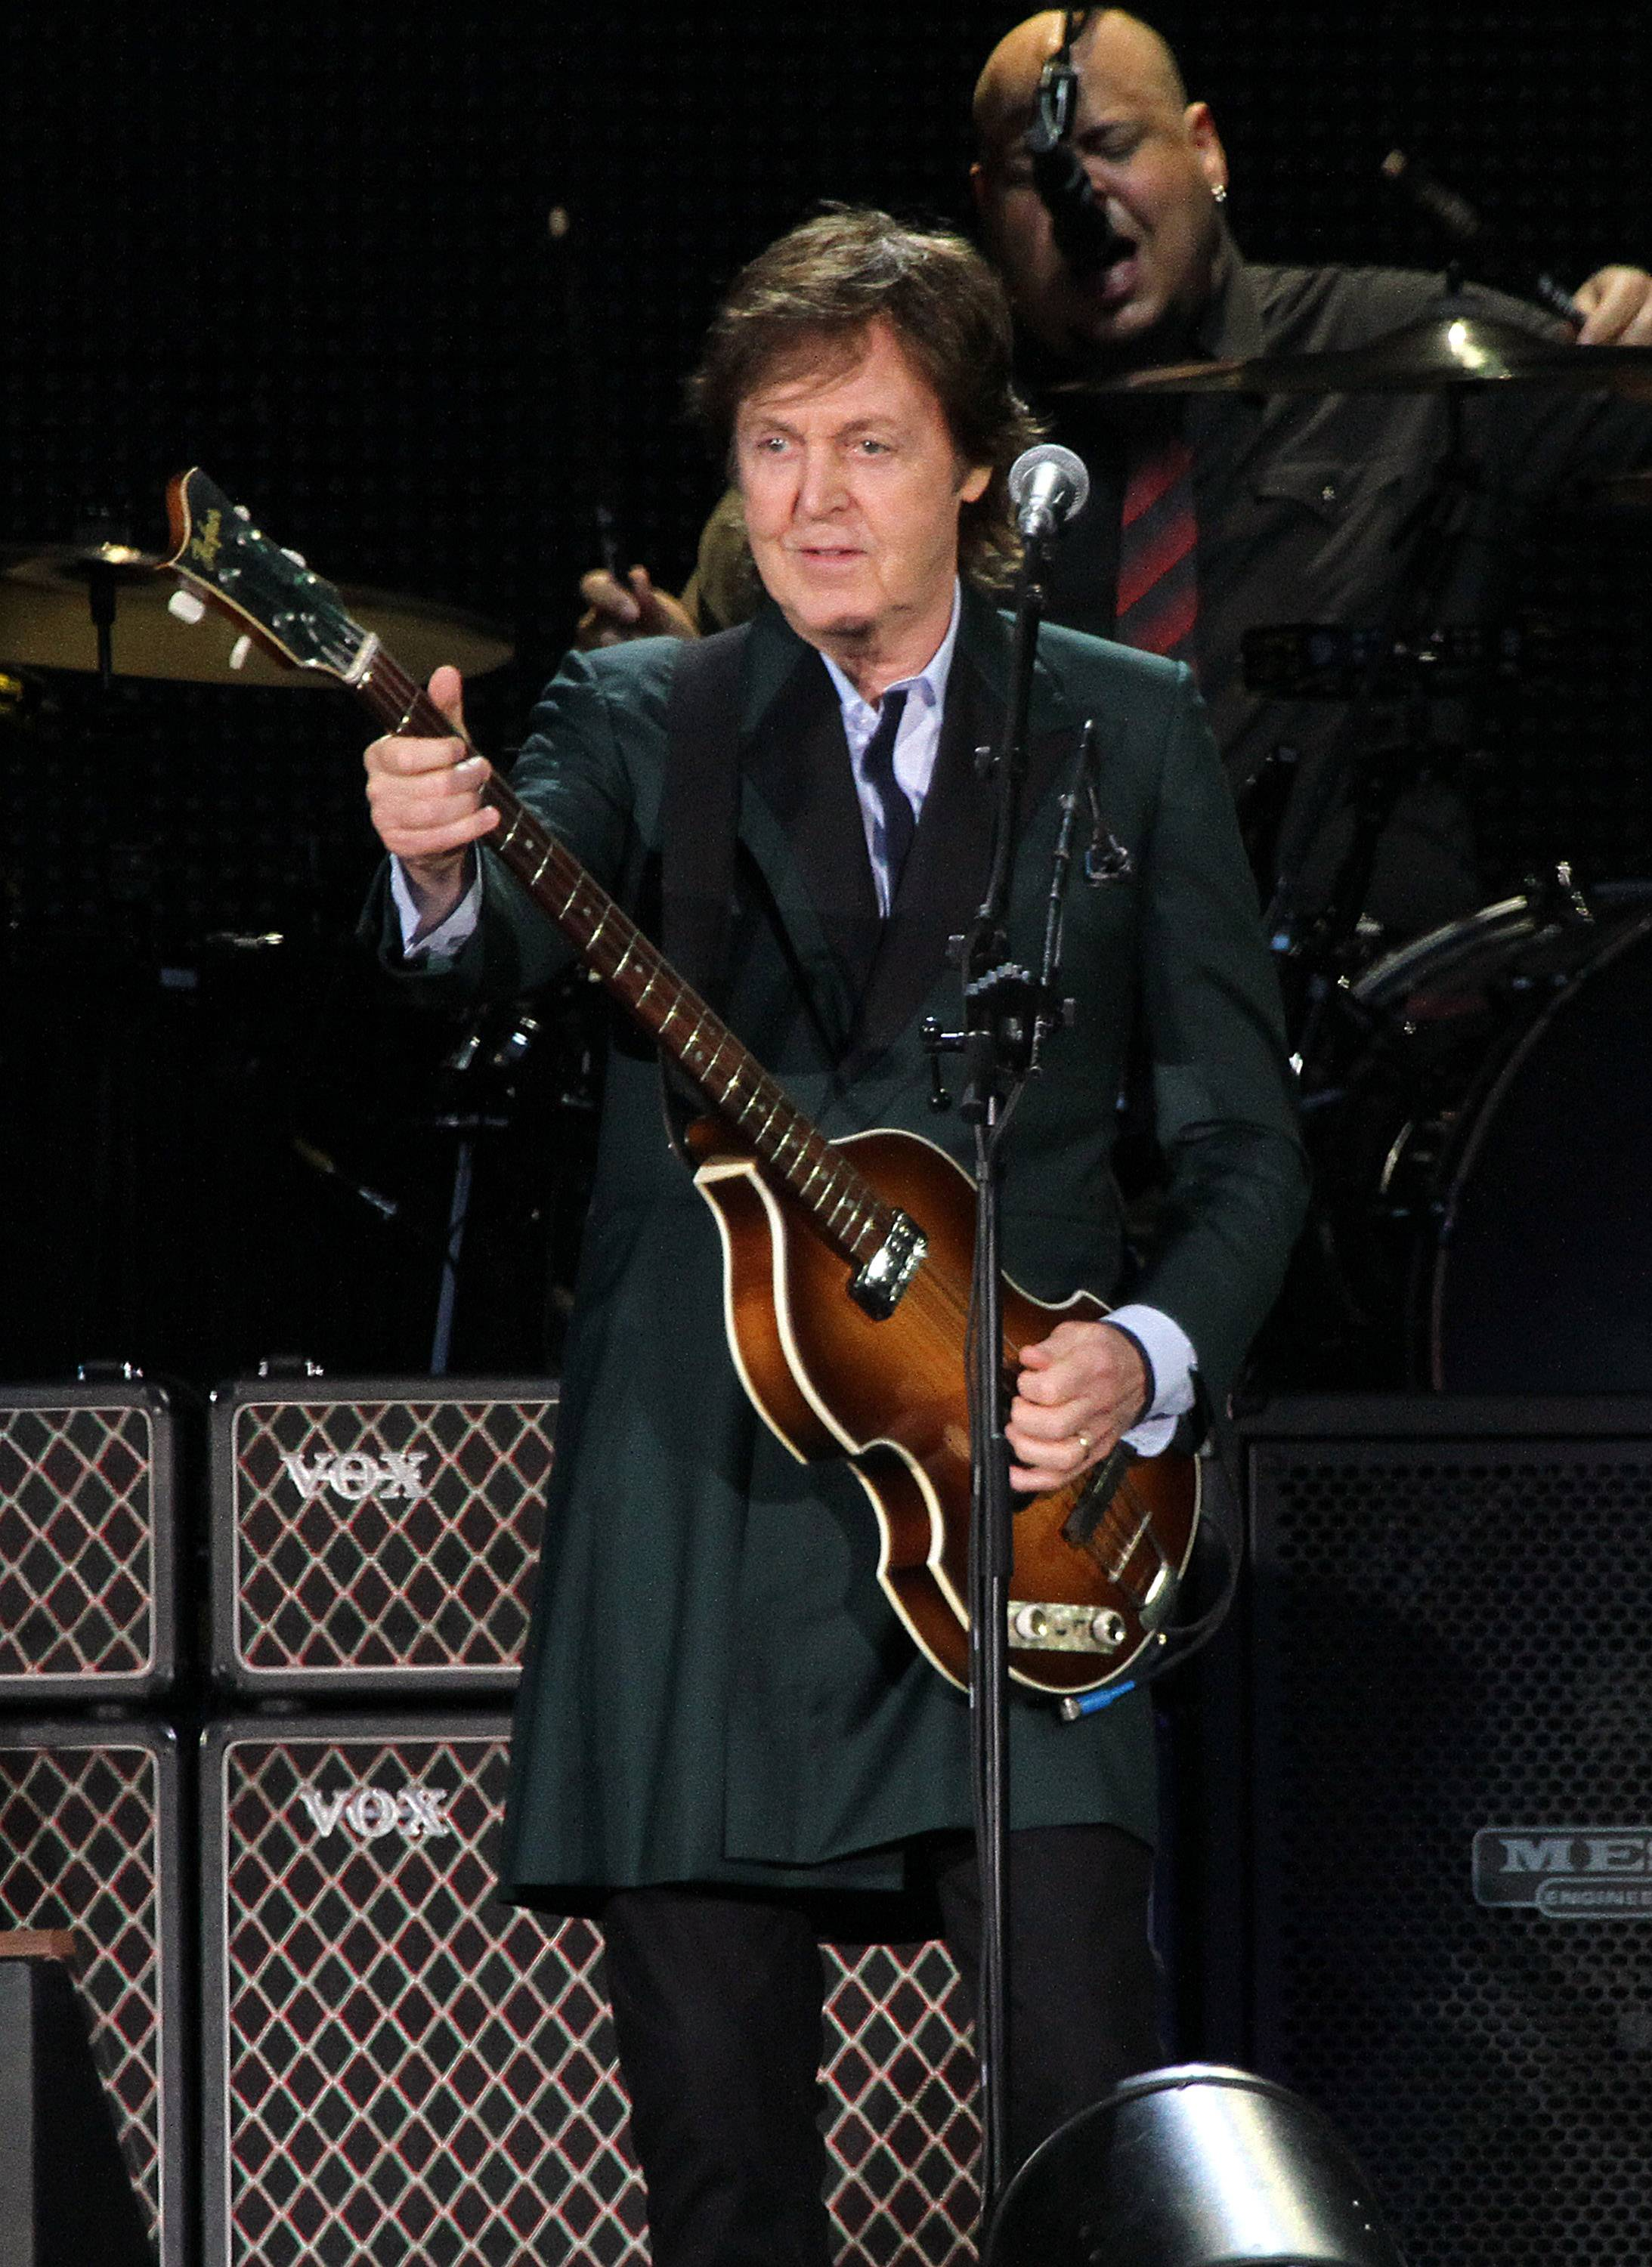 Paul McCartney announced Monday tour stops scheduled for mid-June will be postponed to October.